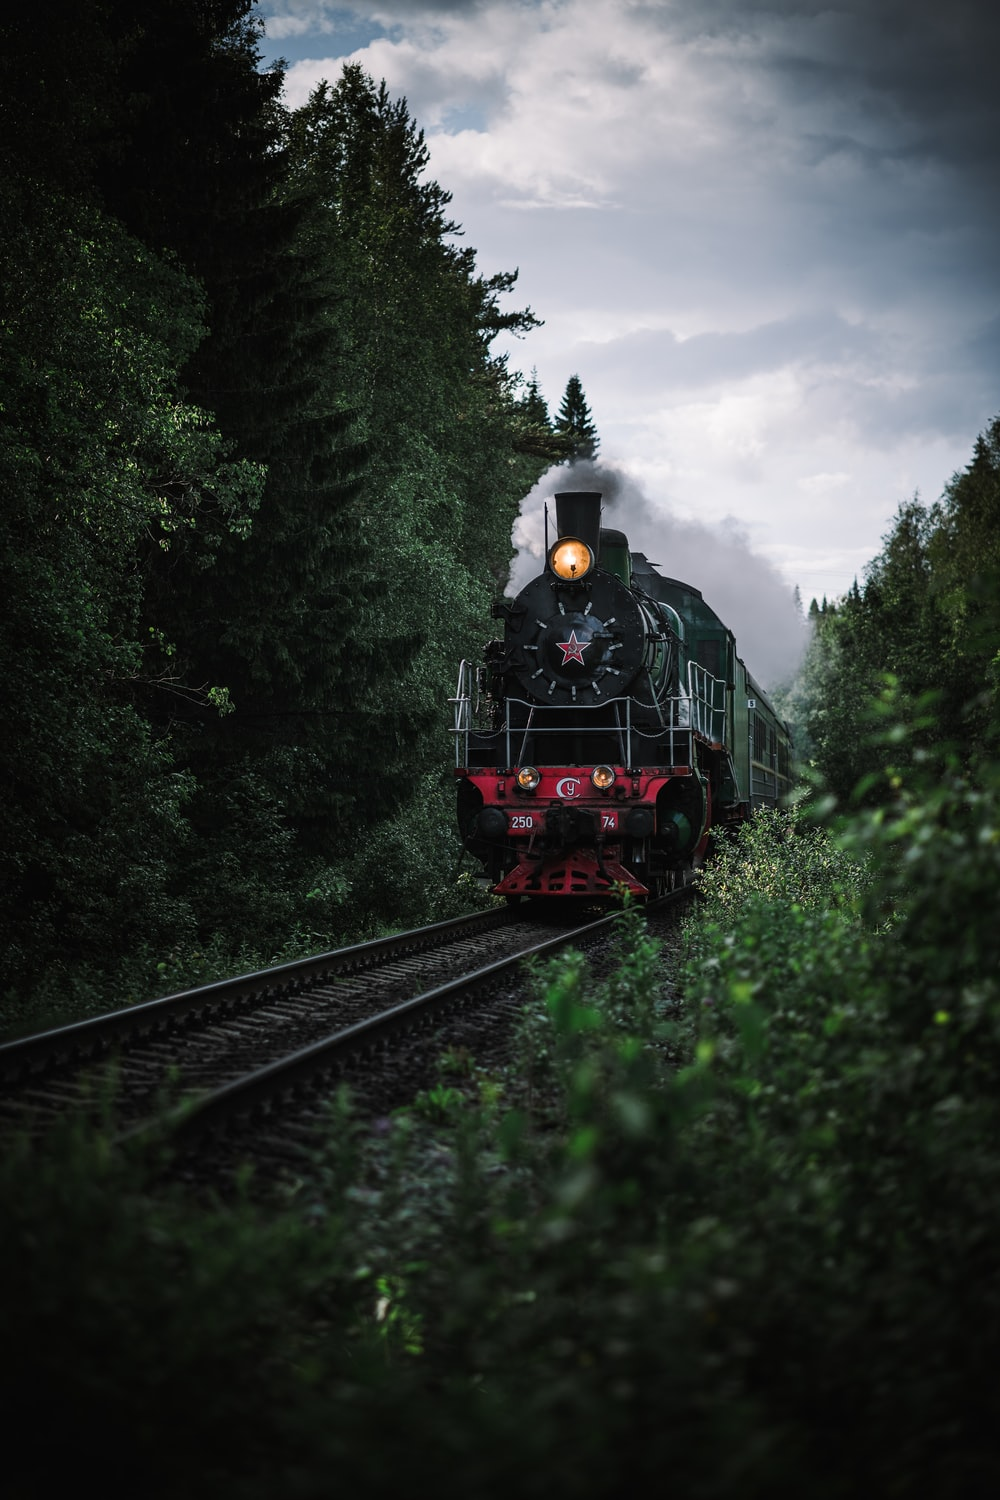 red and black train on rail tracks surrounded by green trees during daytime